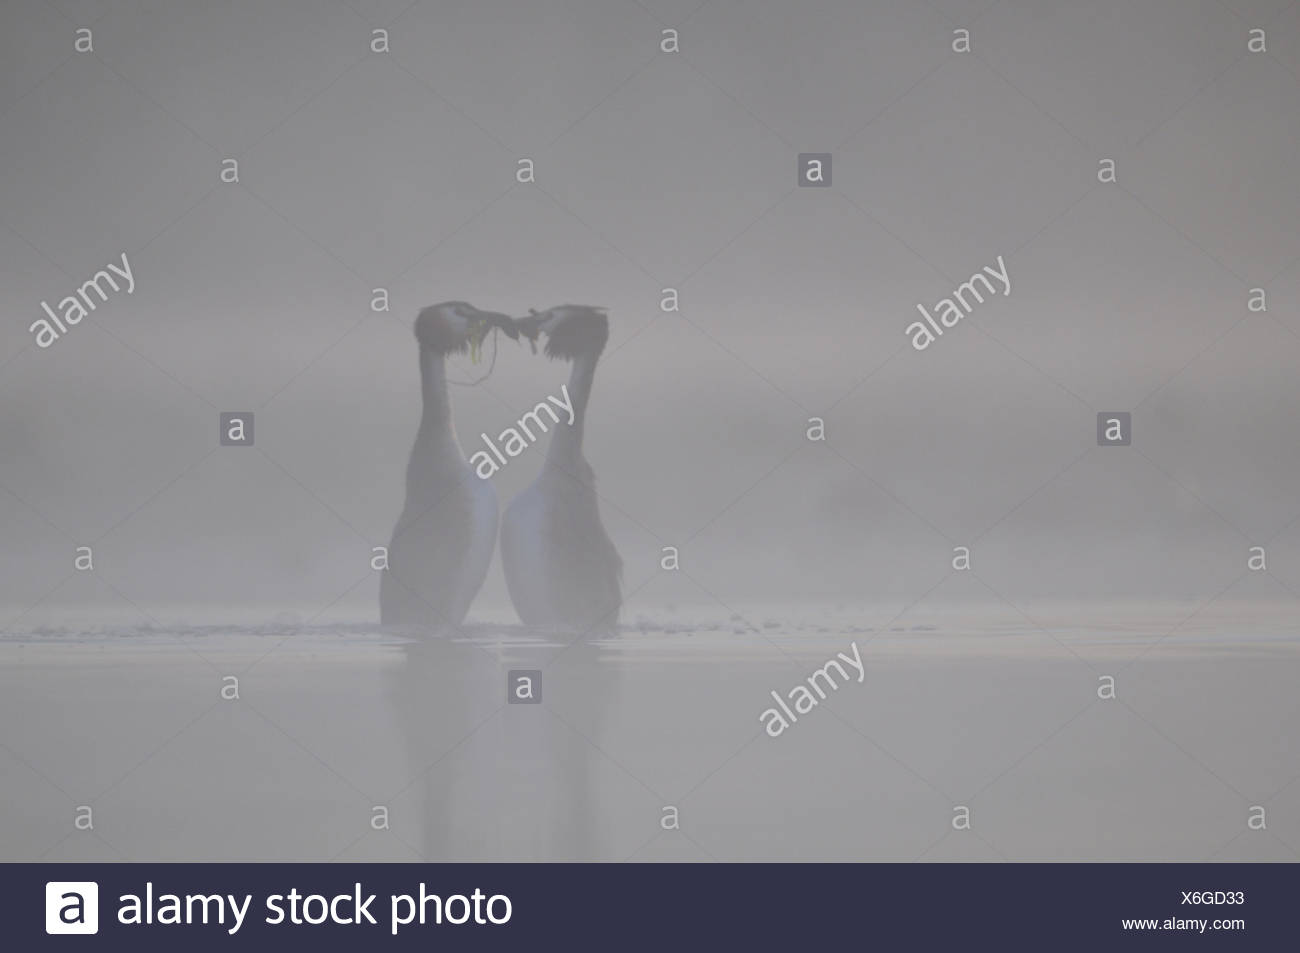 Parade of Great Crested Grebes in the mist - Grandlieu France - Stock Image